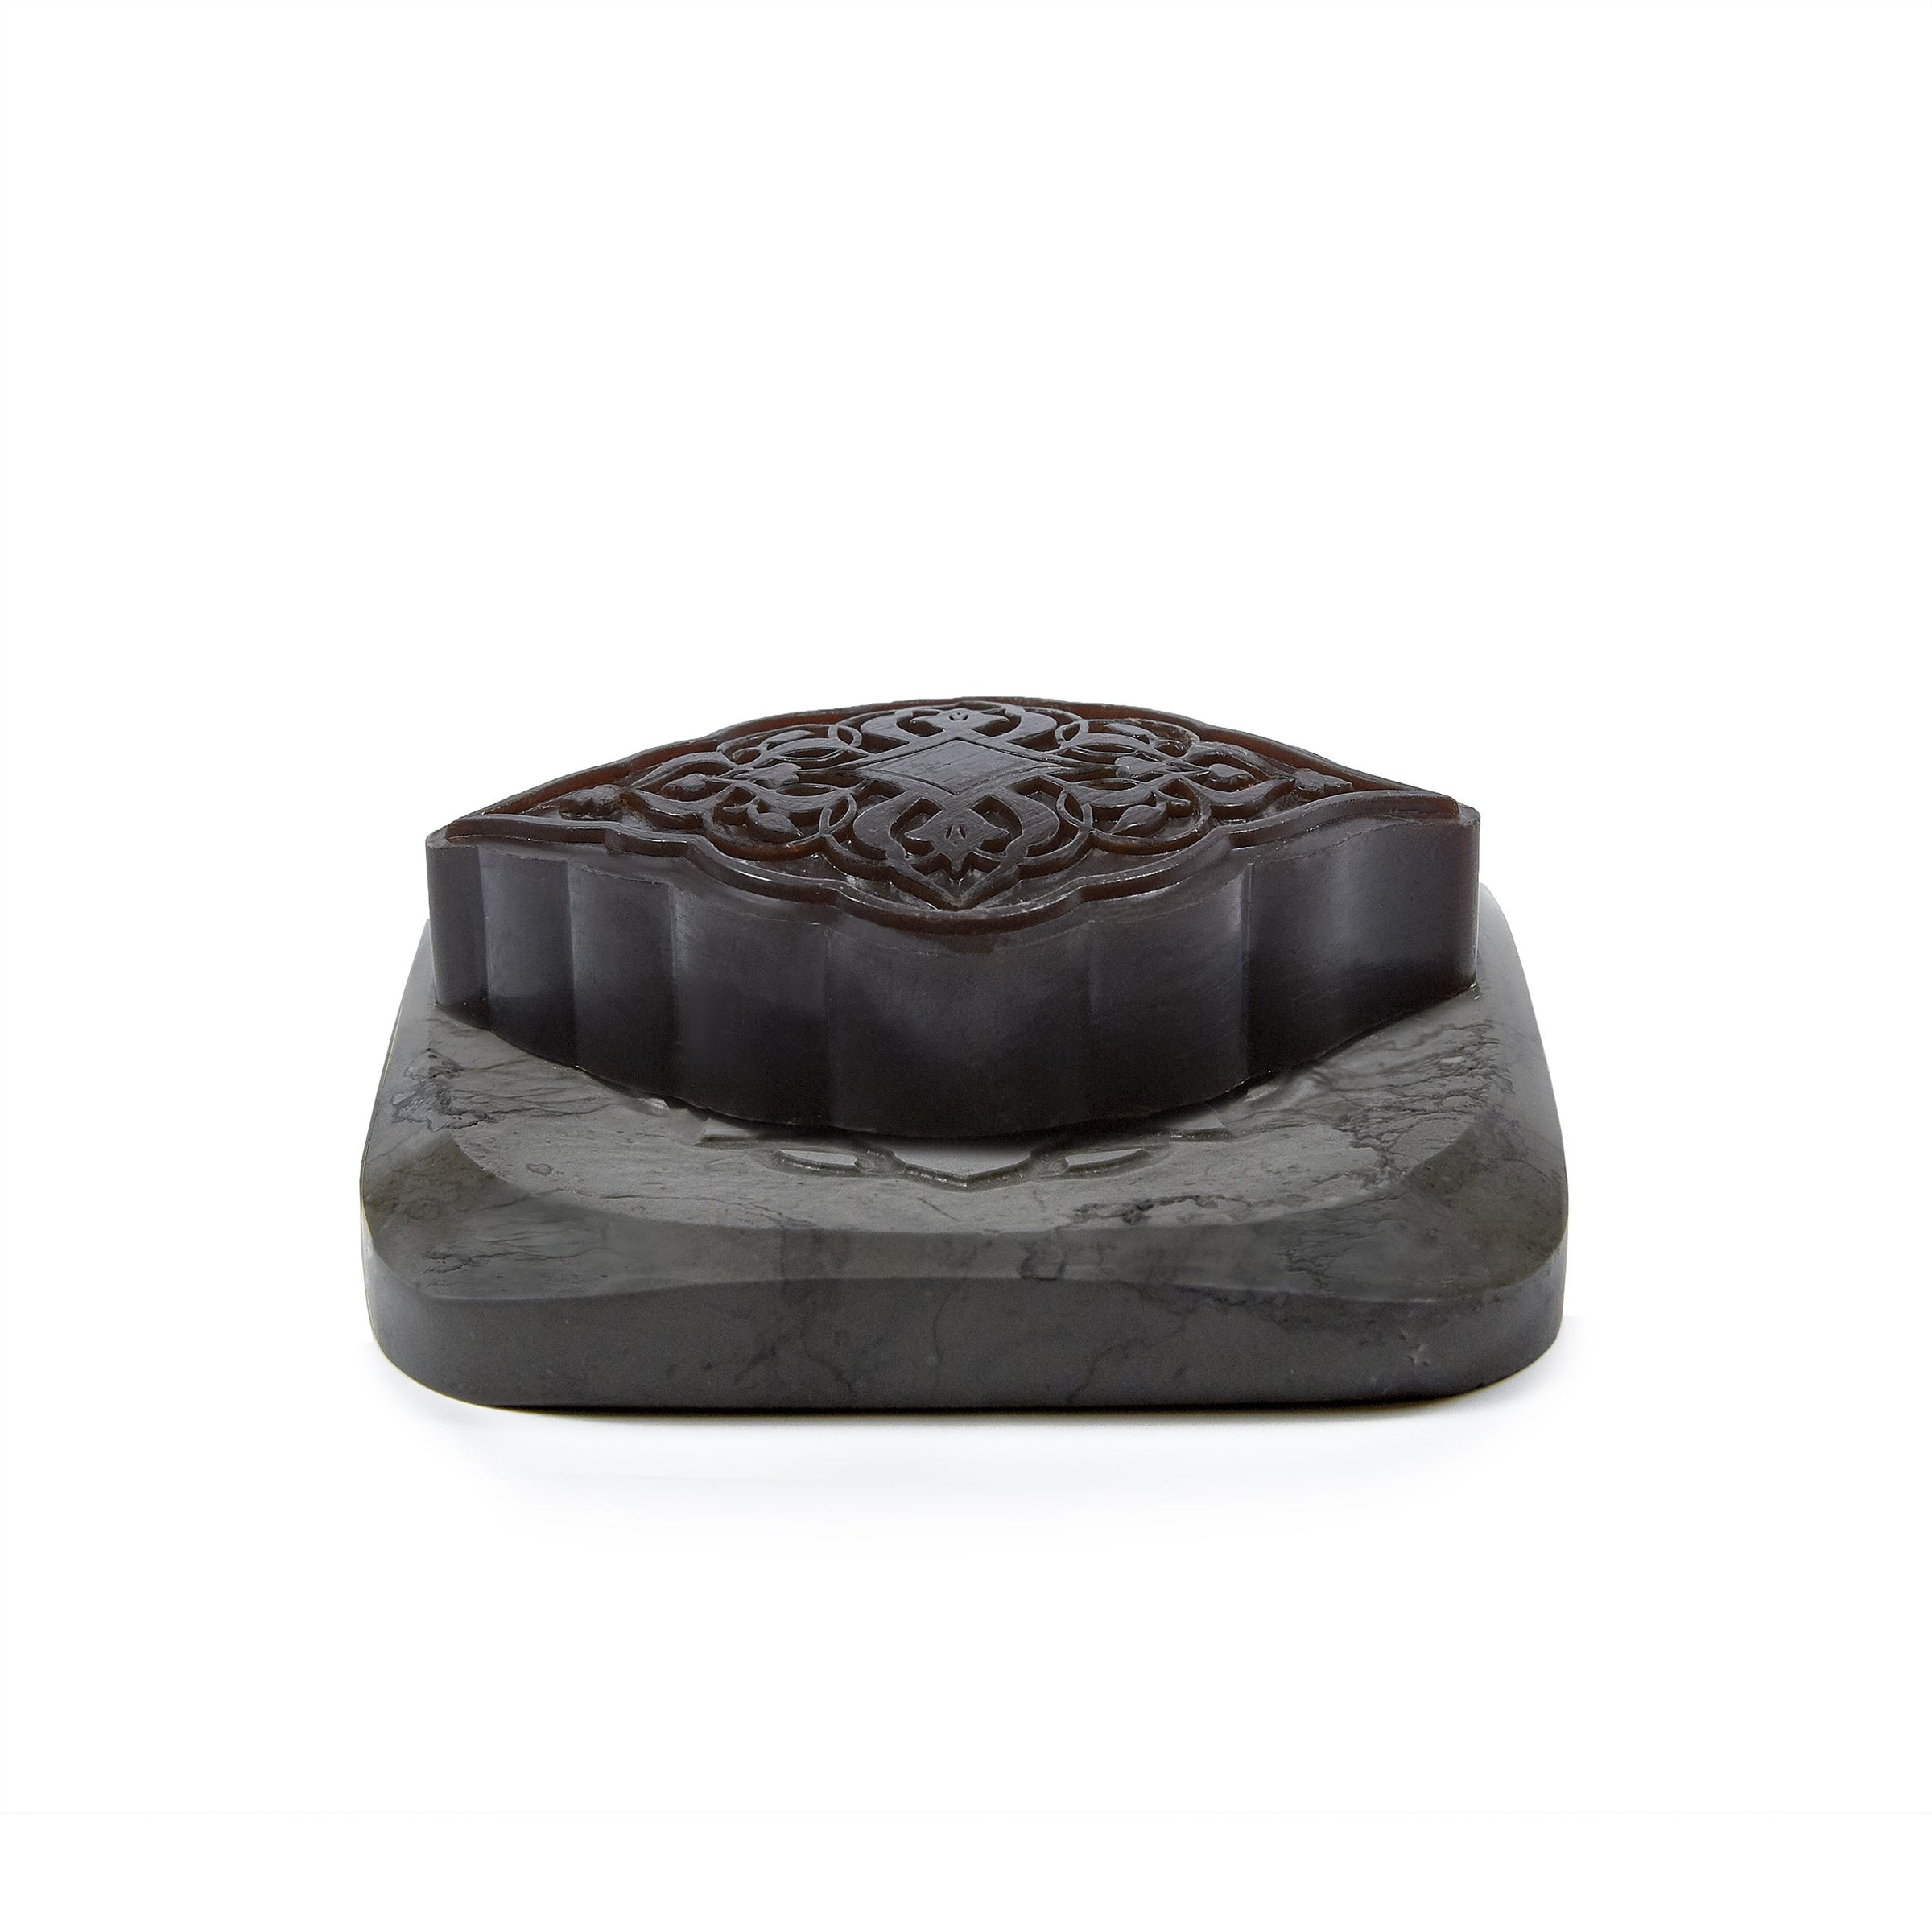 Grey Marble Plate with Amber Ma'amoul Soap